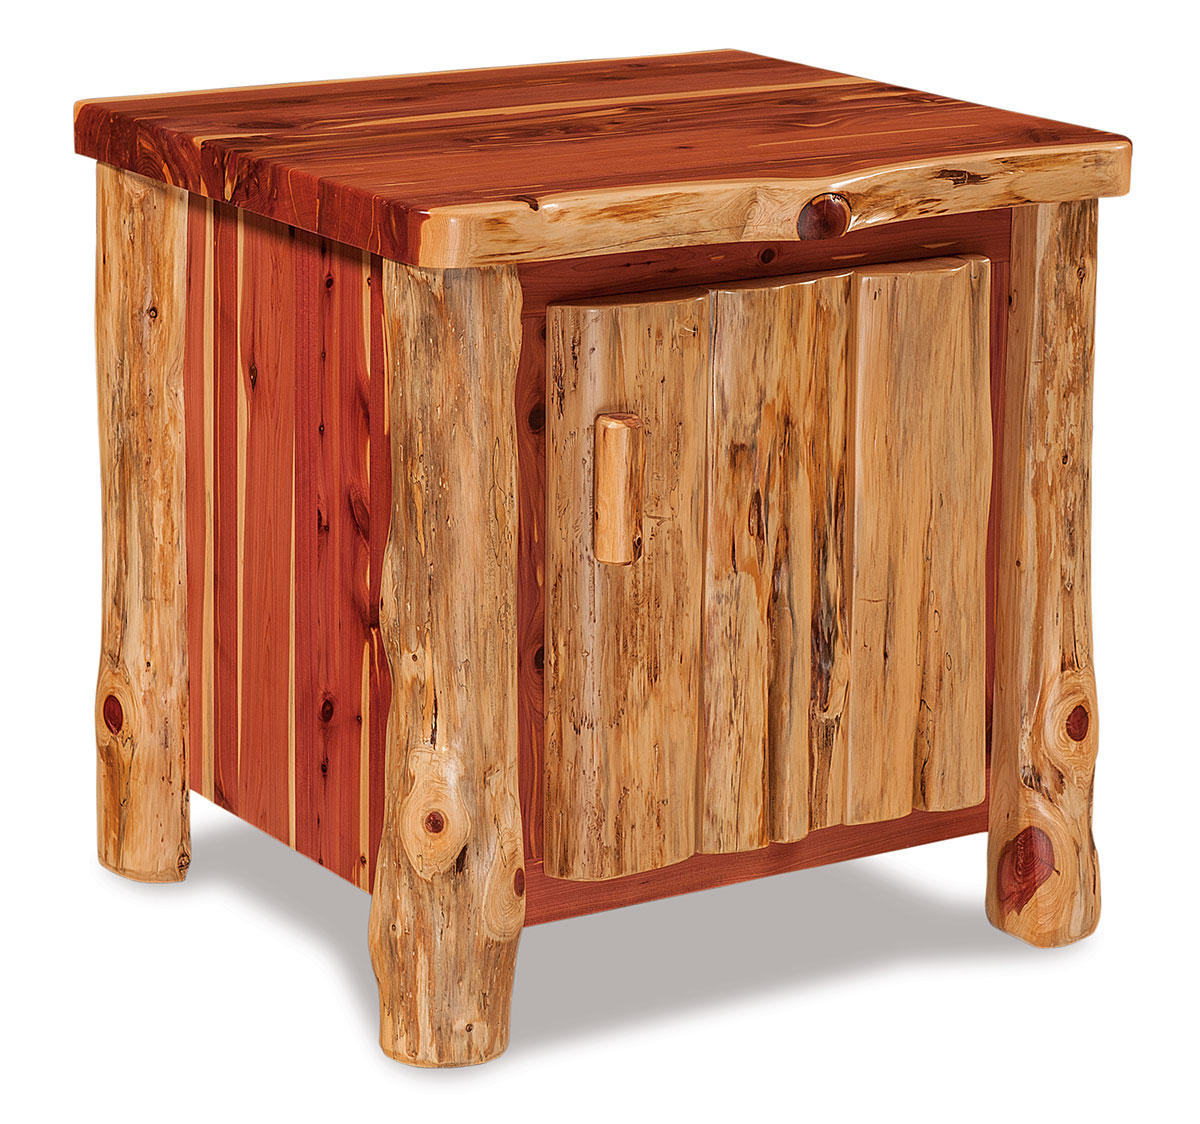 living room dutchman log furniture endtable wdr rdcdr crate and barrel marilyn accent table end with door small skinny kitchen bar storage red tables decor folding outdoor side